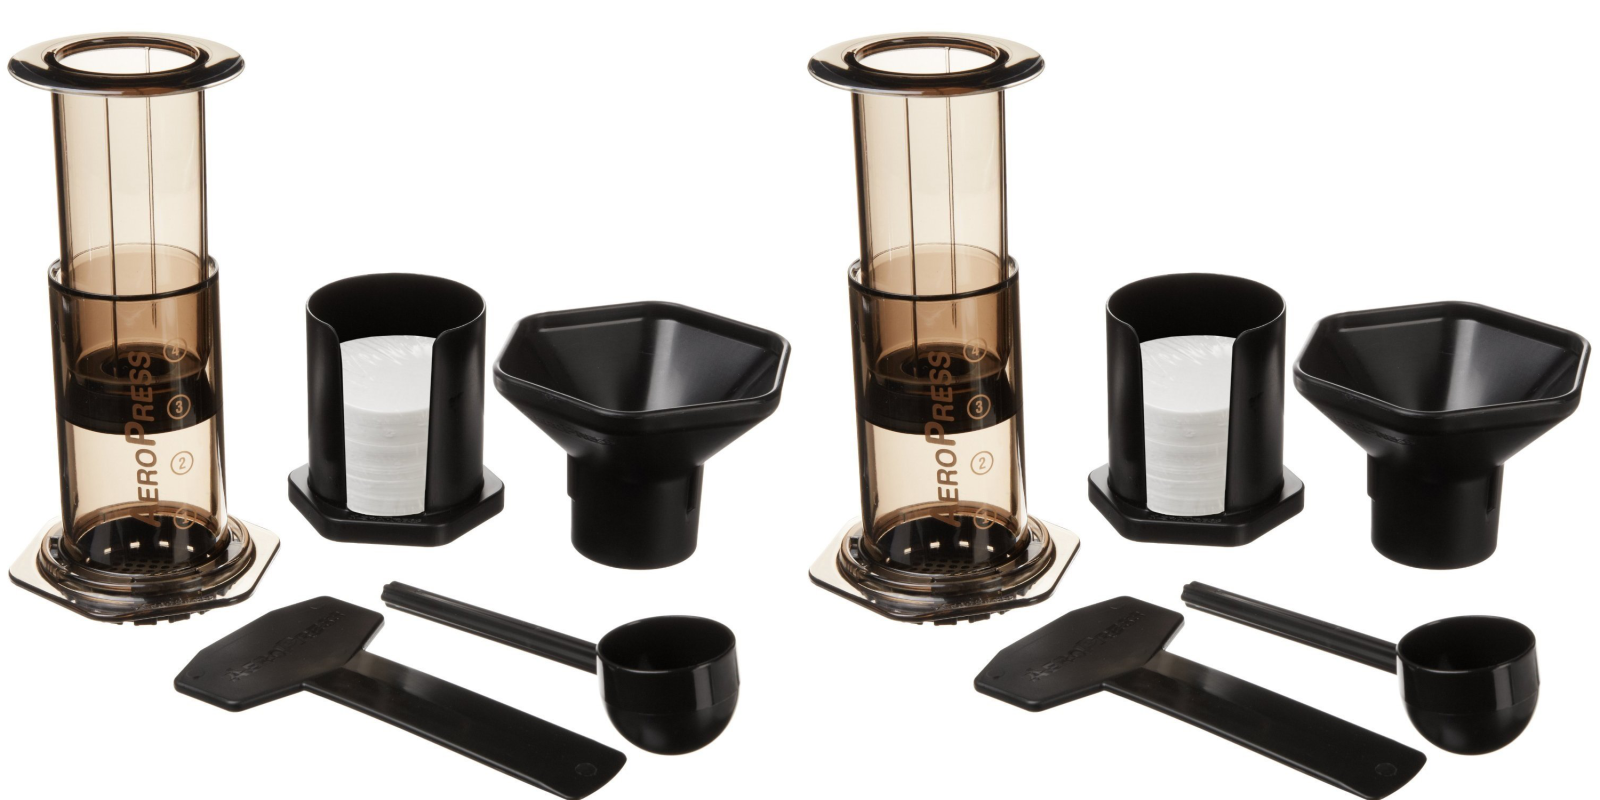 The AeroPress Coffee & Espresso Maker gets a rare price drop today, now down to $24